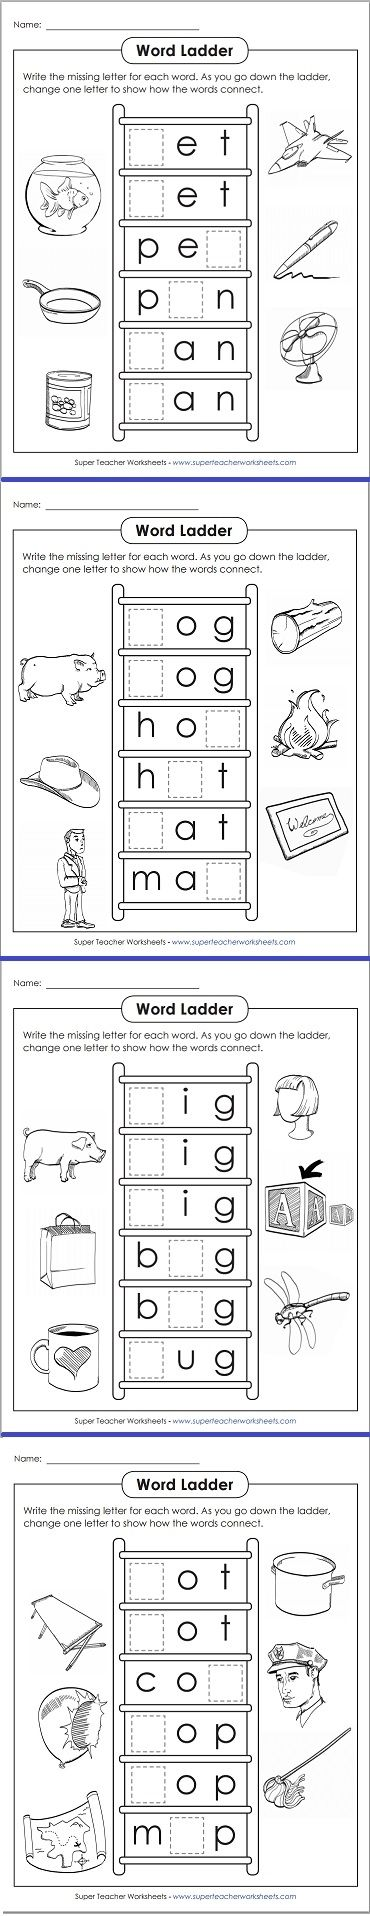 Best 25+ Cvc worksheets ideas on Pinterest Phonics worksheets - phonics worksheet